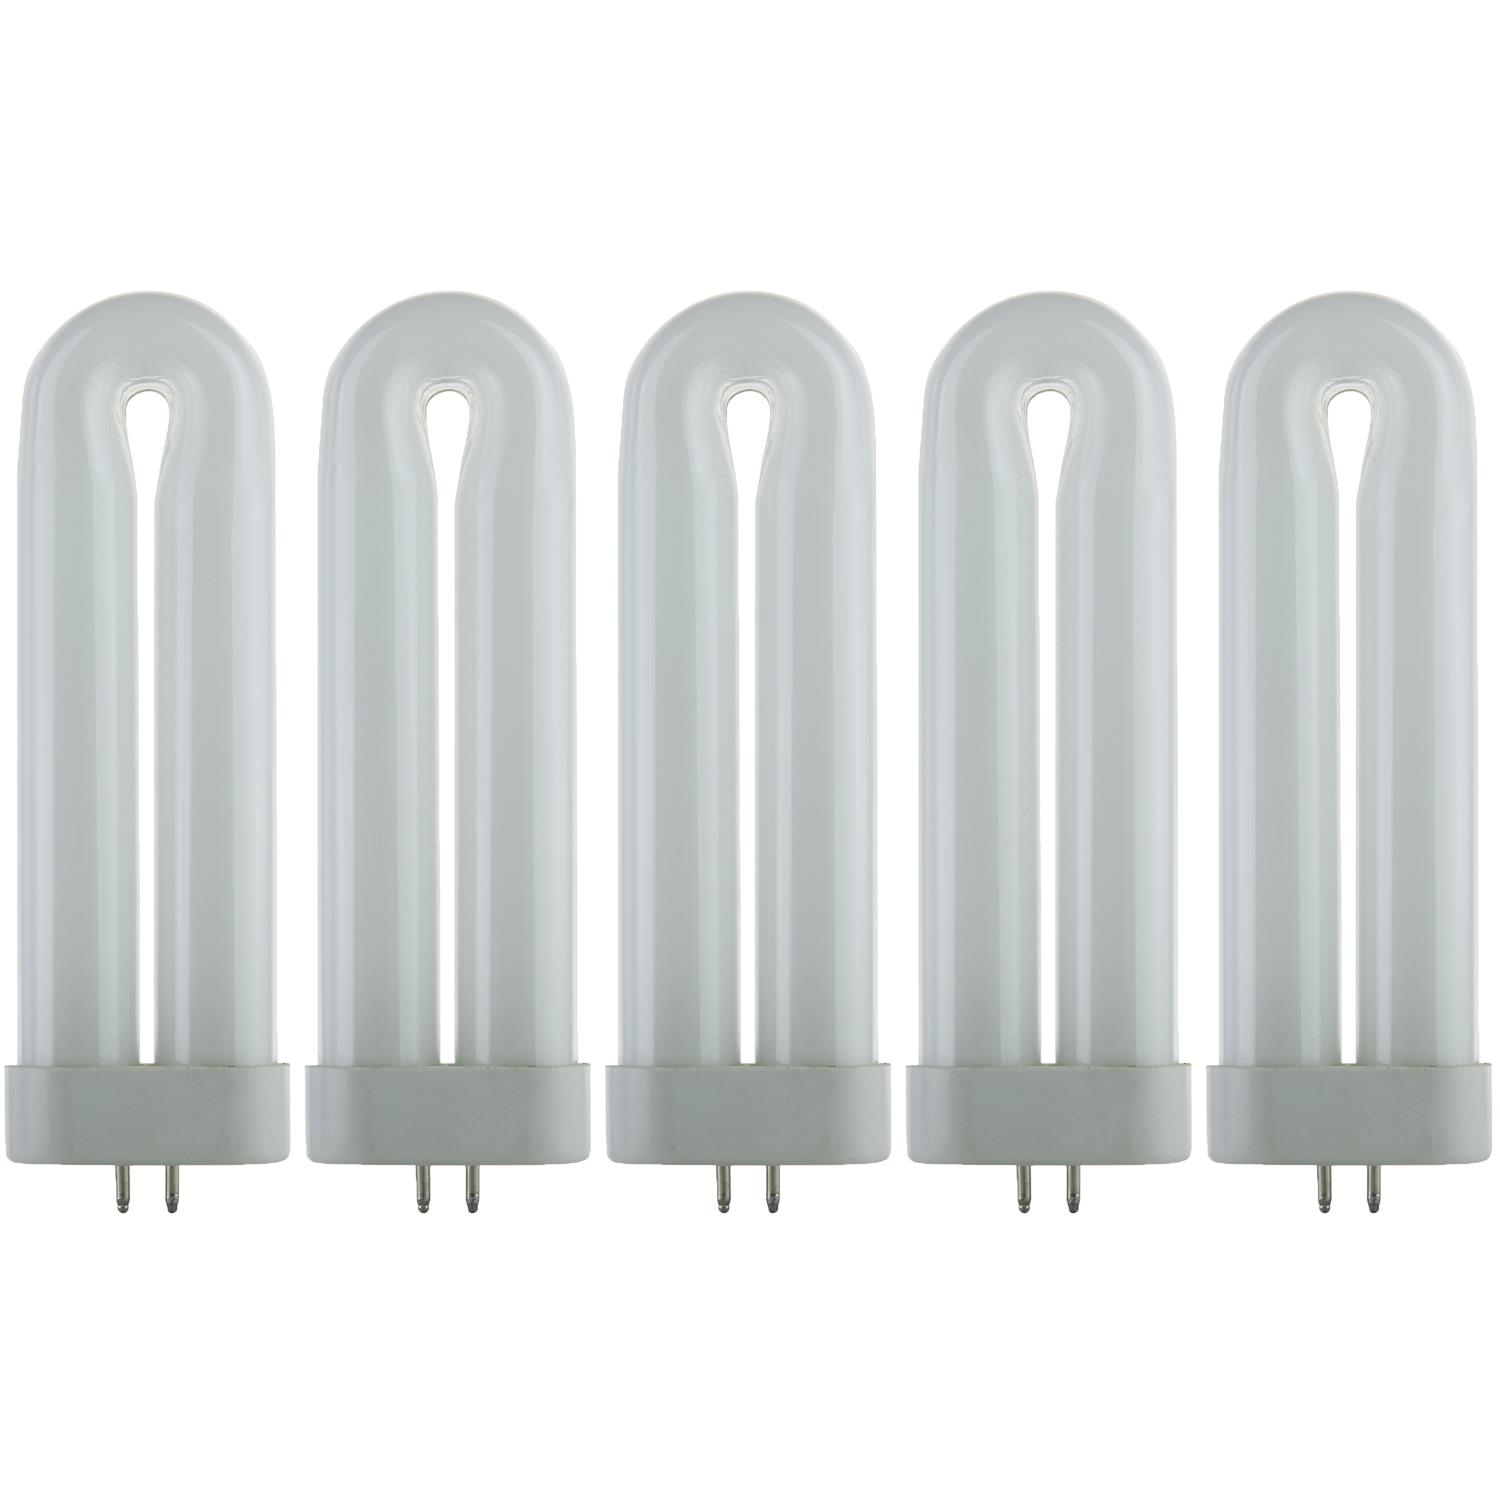 Pack of 5 Sunlite 8 W FUL 4Pin Single UShaped Twin Tube G...